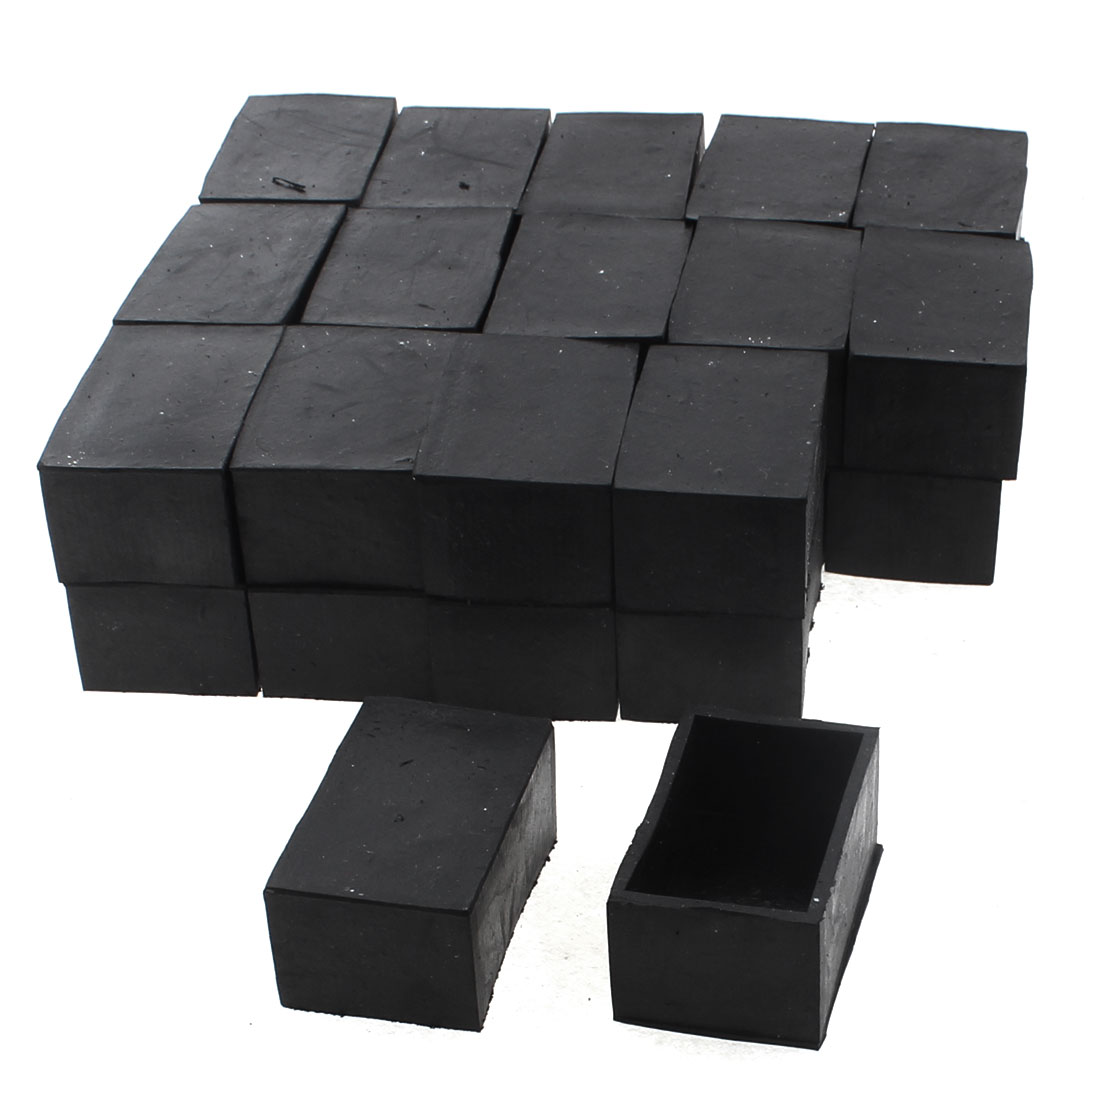 50mm x 30mm Rectangle Shape Furniture Table Chair Foot Leg Rubber End Cap Cover Black 30pcs